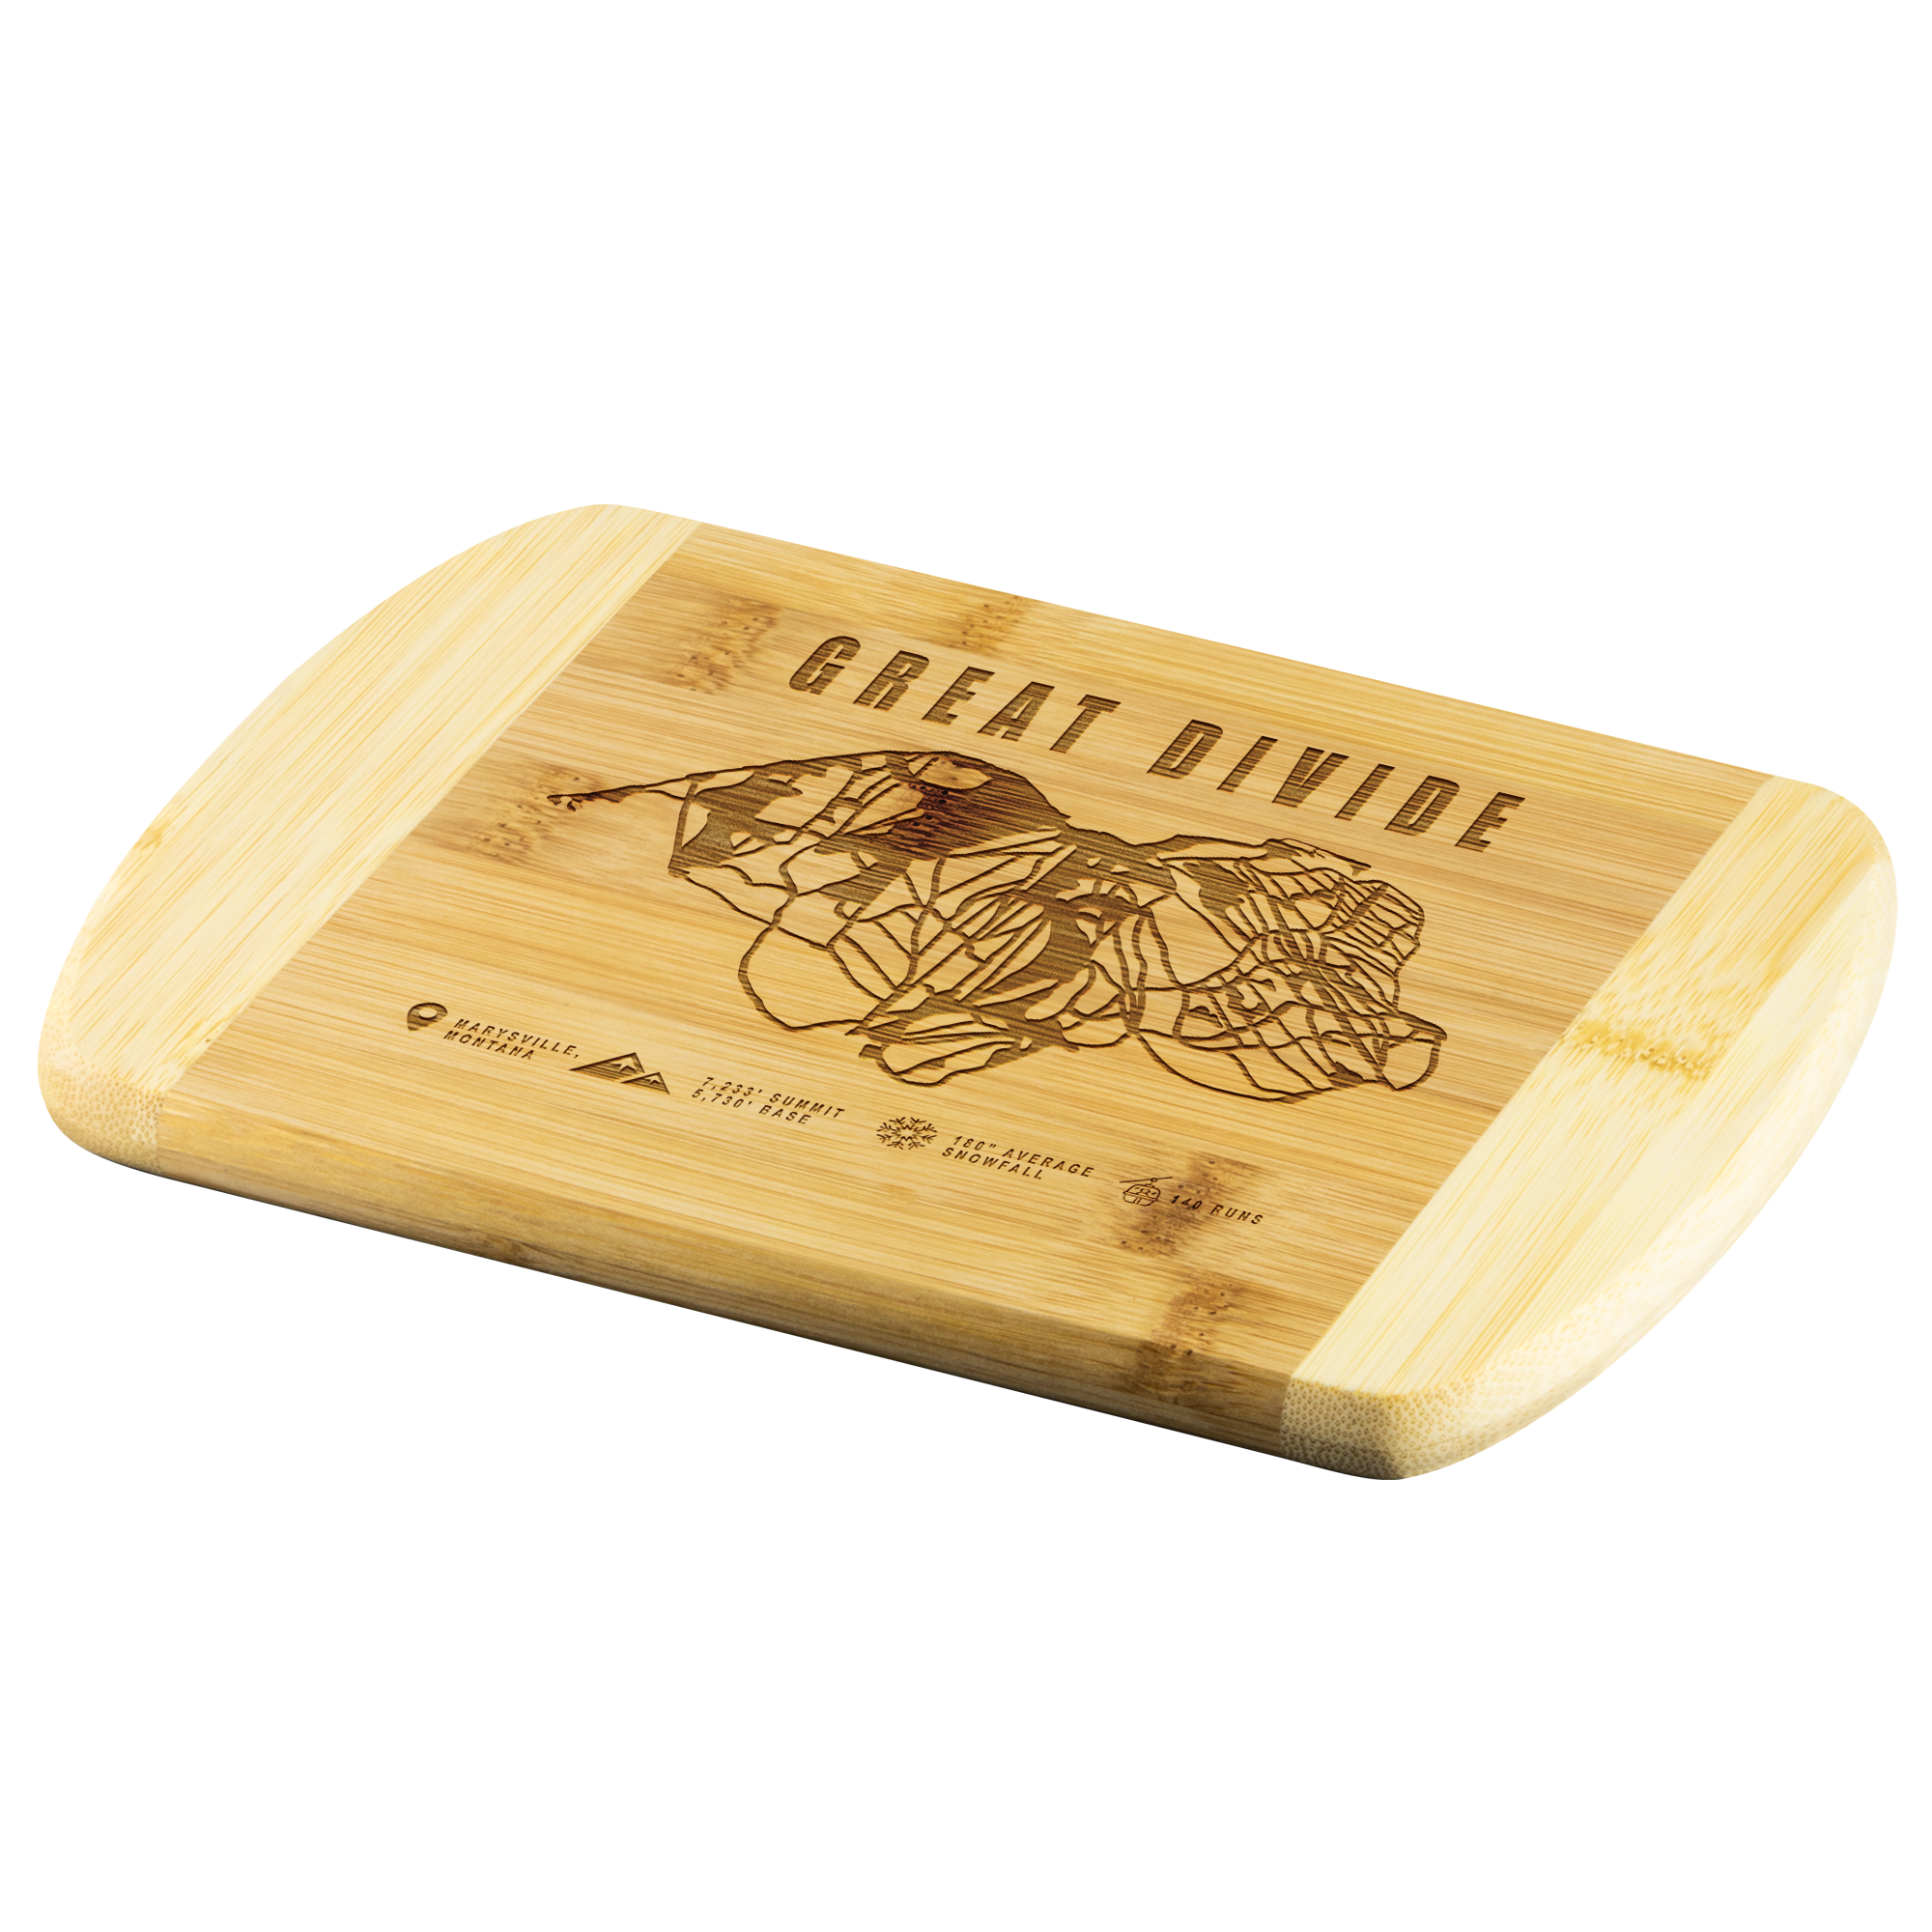 Great Divide Montana Ski-Resort Map Bamboo Cutting Board Round Edge